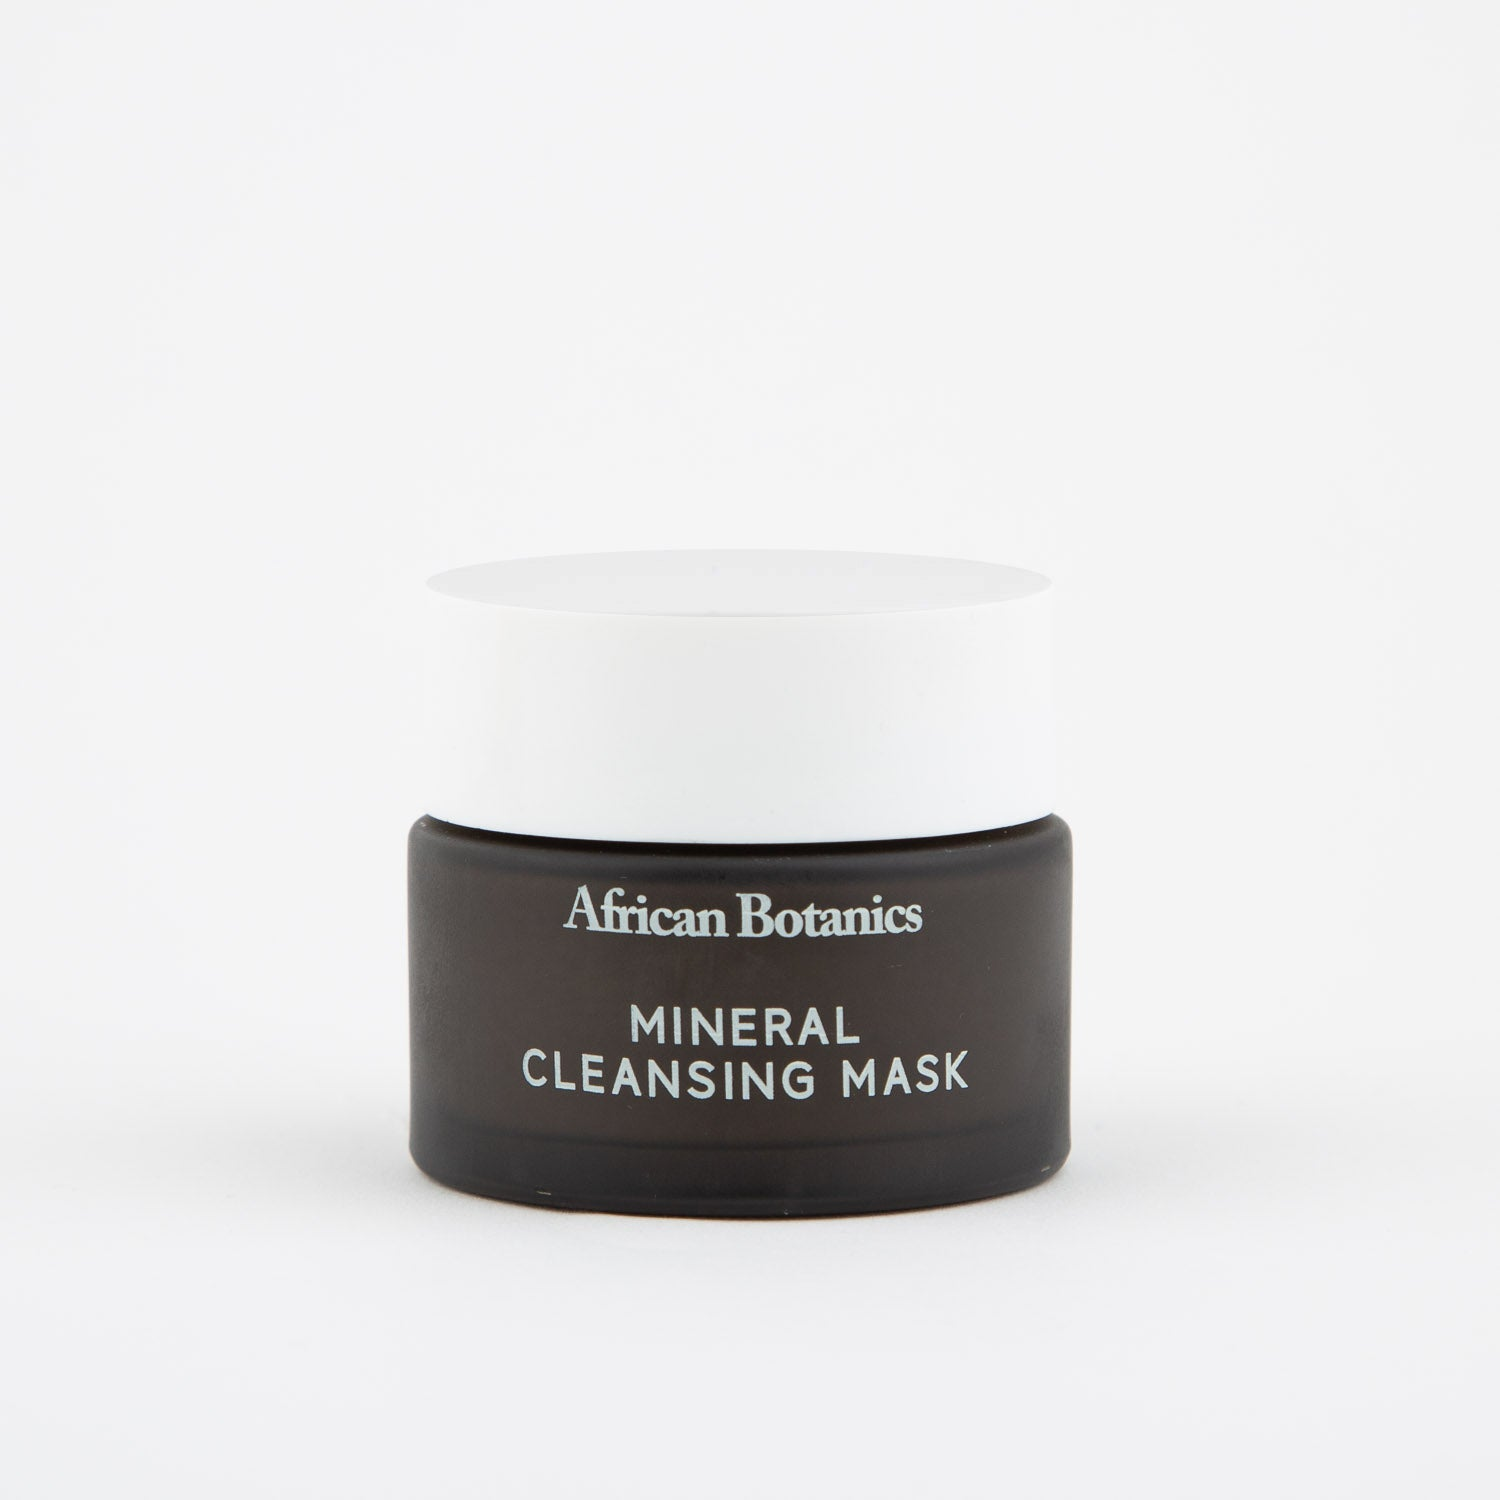 Marula mineral cleansing face mask beauty product by African Botanics at Secret Location